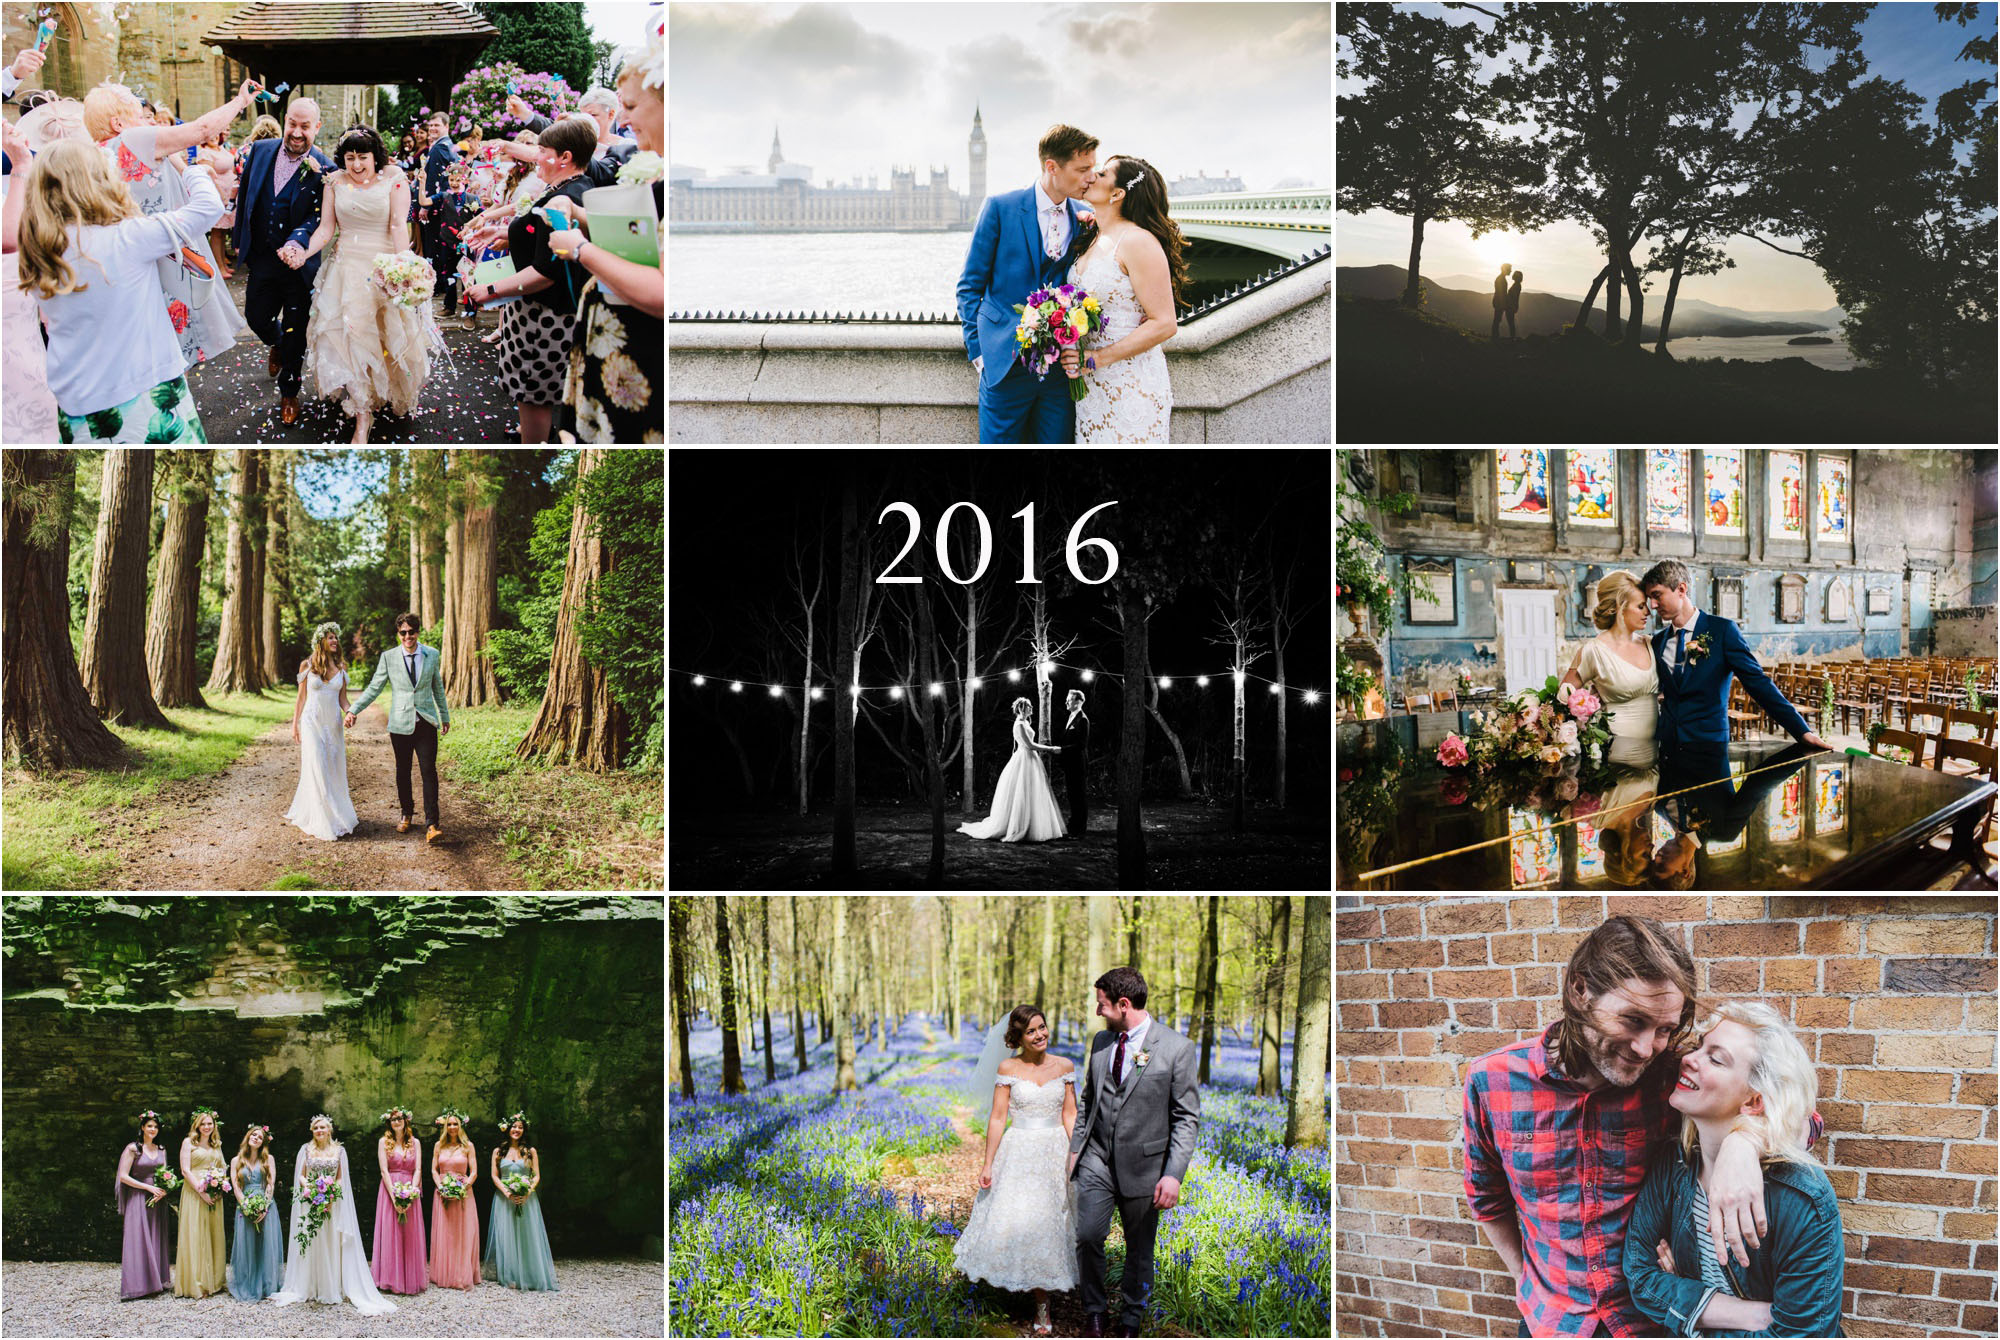 2016 - a year in pictures